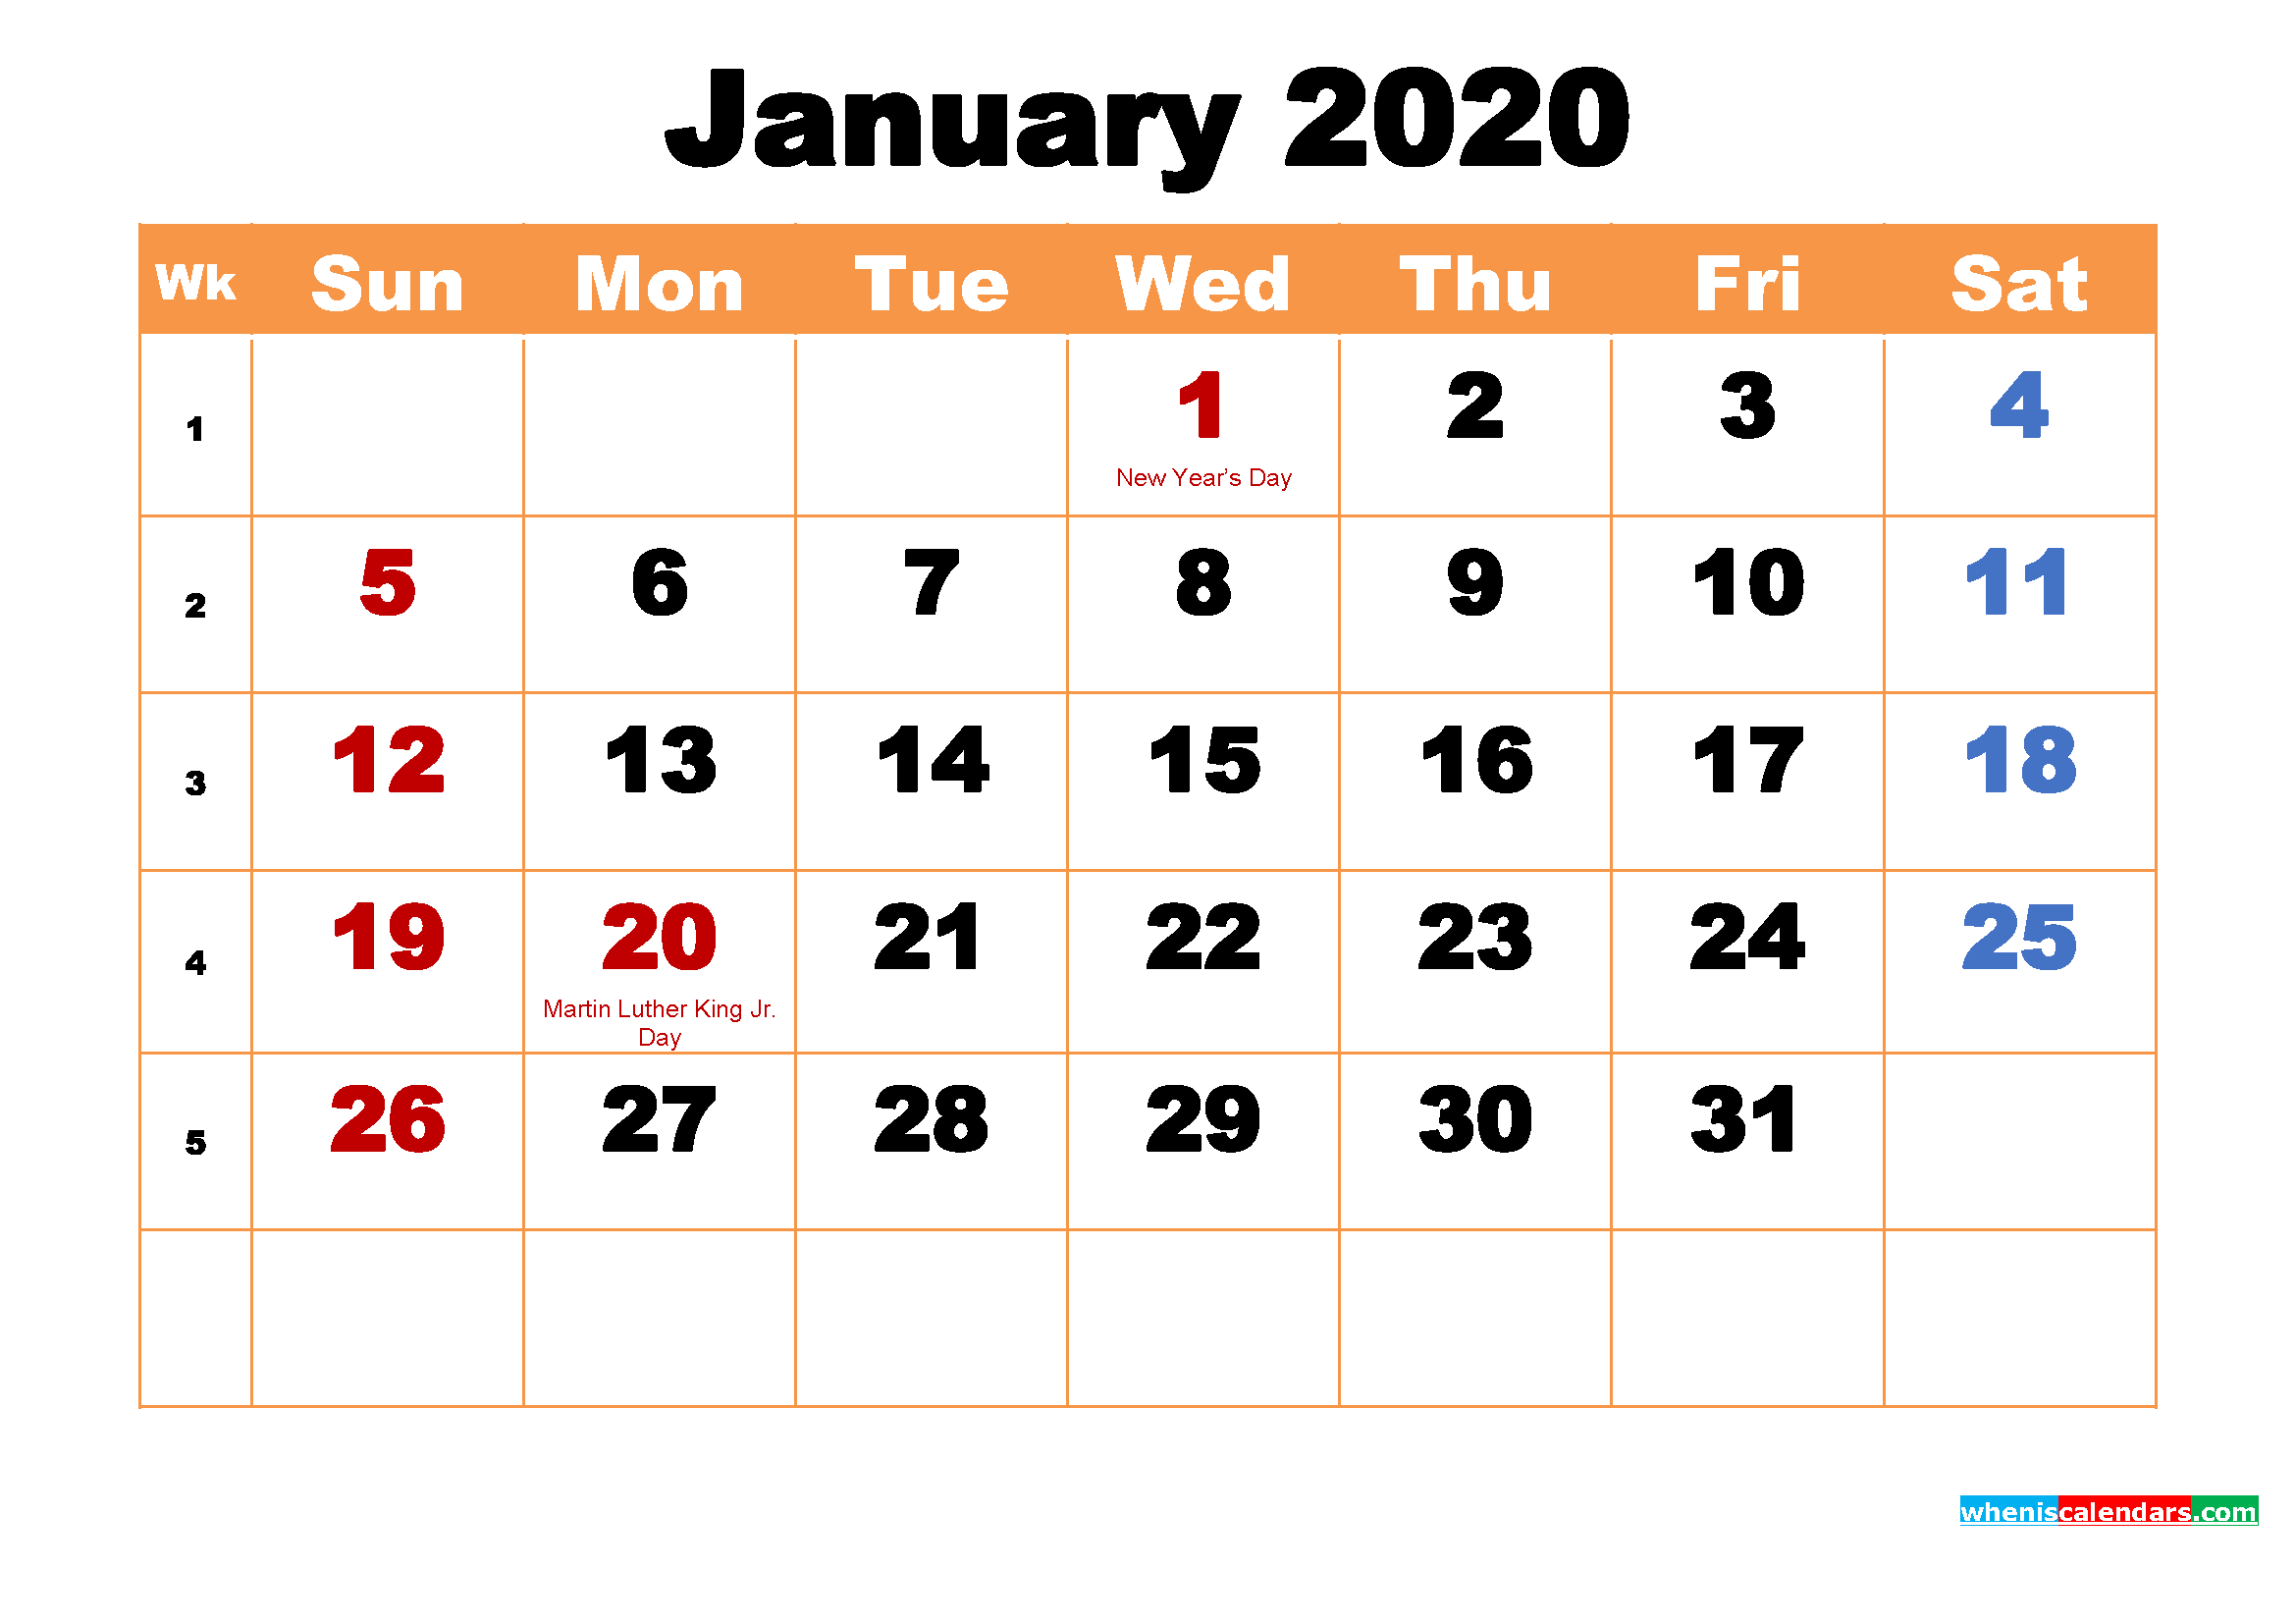 January 2020 Printable Monthly Calendar with Holidays